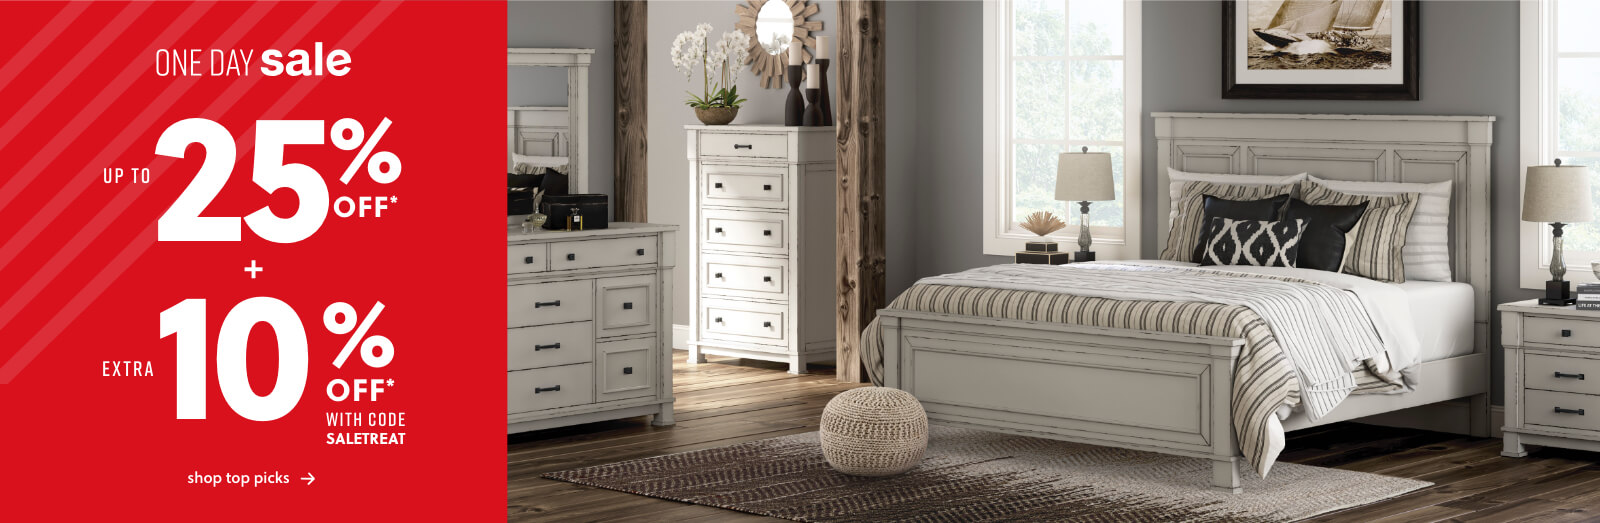 Sofa In A Box Companies Ashley Furniture Homestore Home Furniture Decor Ashley Homestore